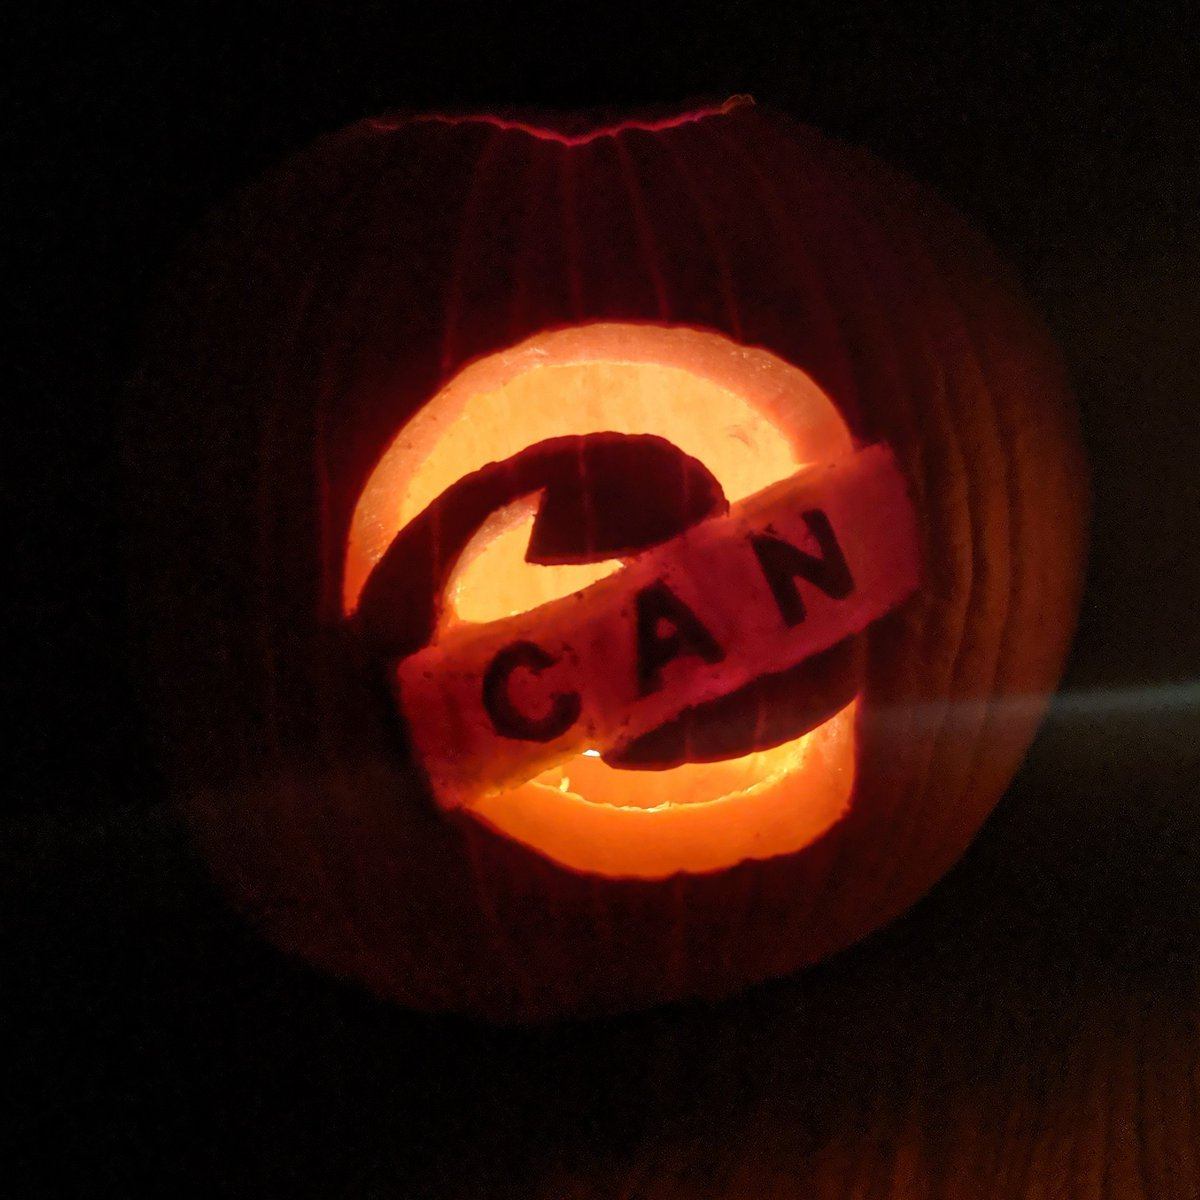 For my annual Halloween pumpkin this year, I have carved the logo of my default/daily driver browser. Thank you, @MSEdgeDev  team, for being awesome!